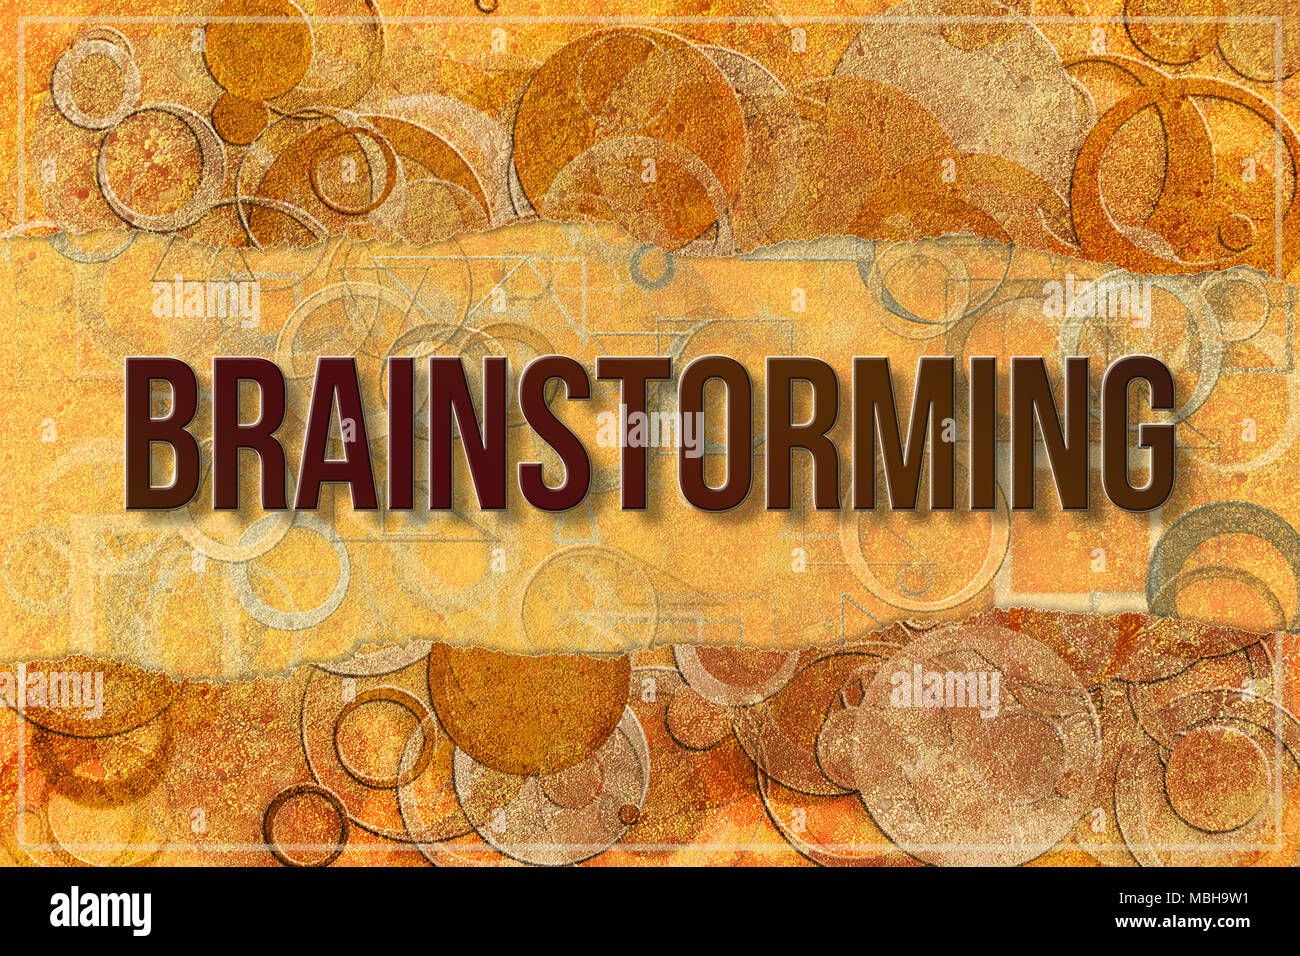 Brainstorming Business Finance Conceptual Words With Texture Background For Web Page Graphic Design Catalog Or Wallpaper